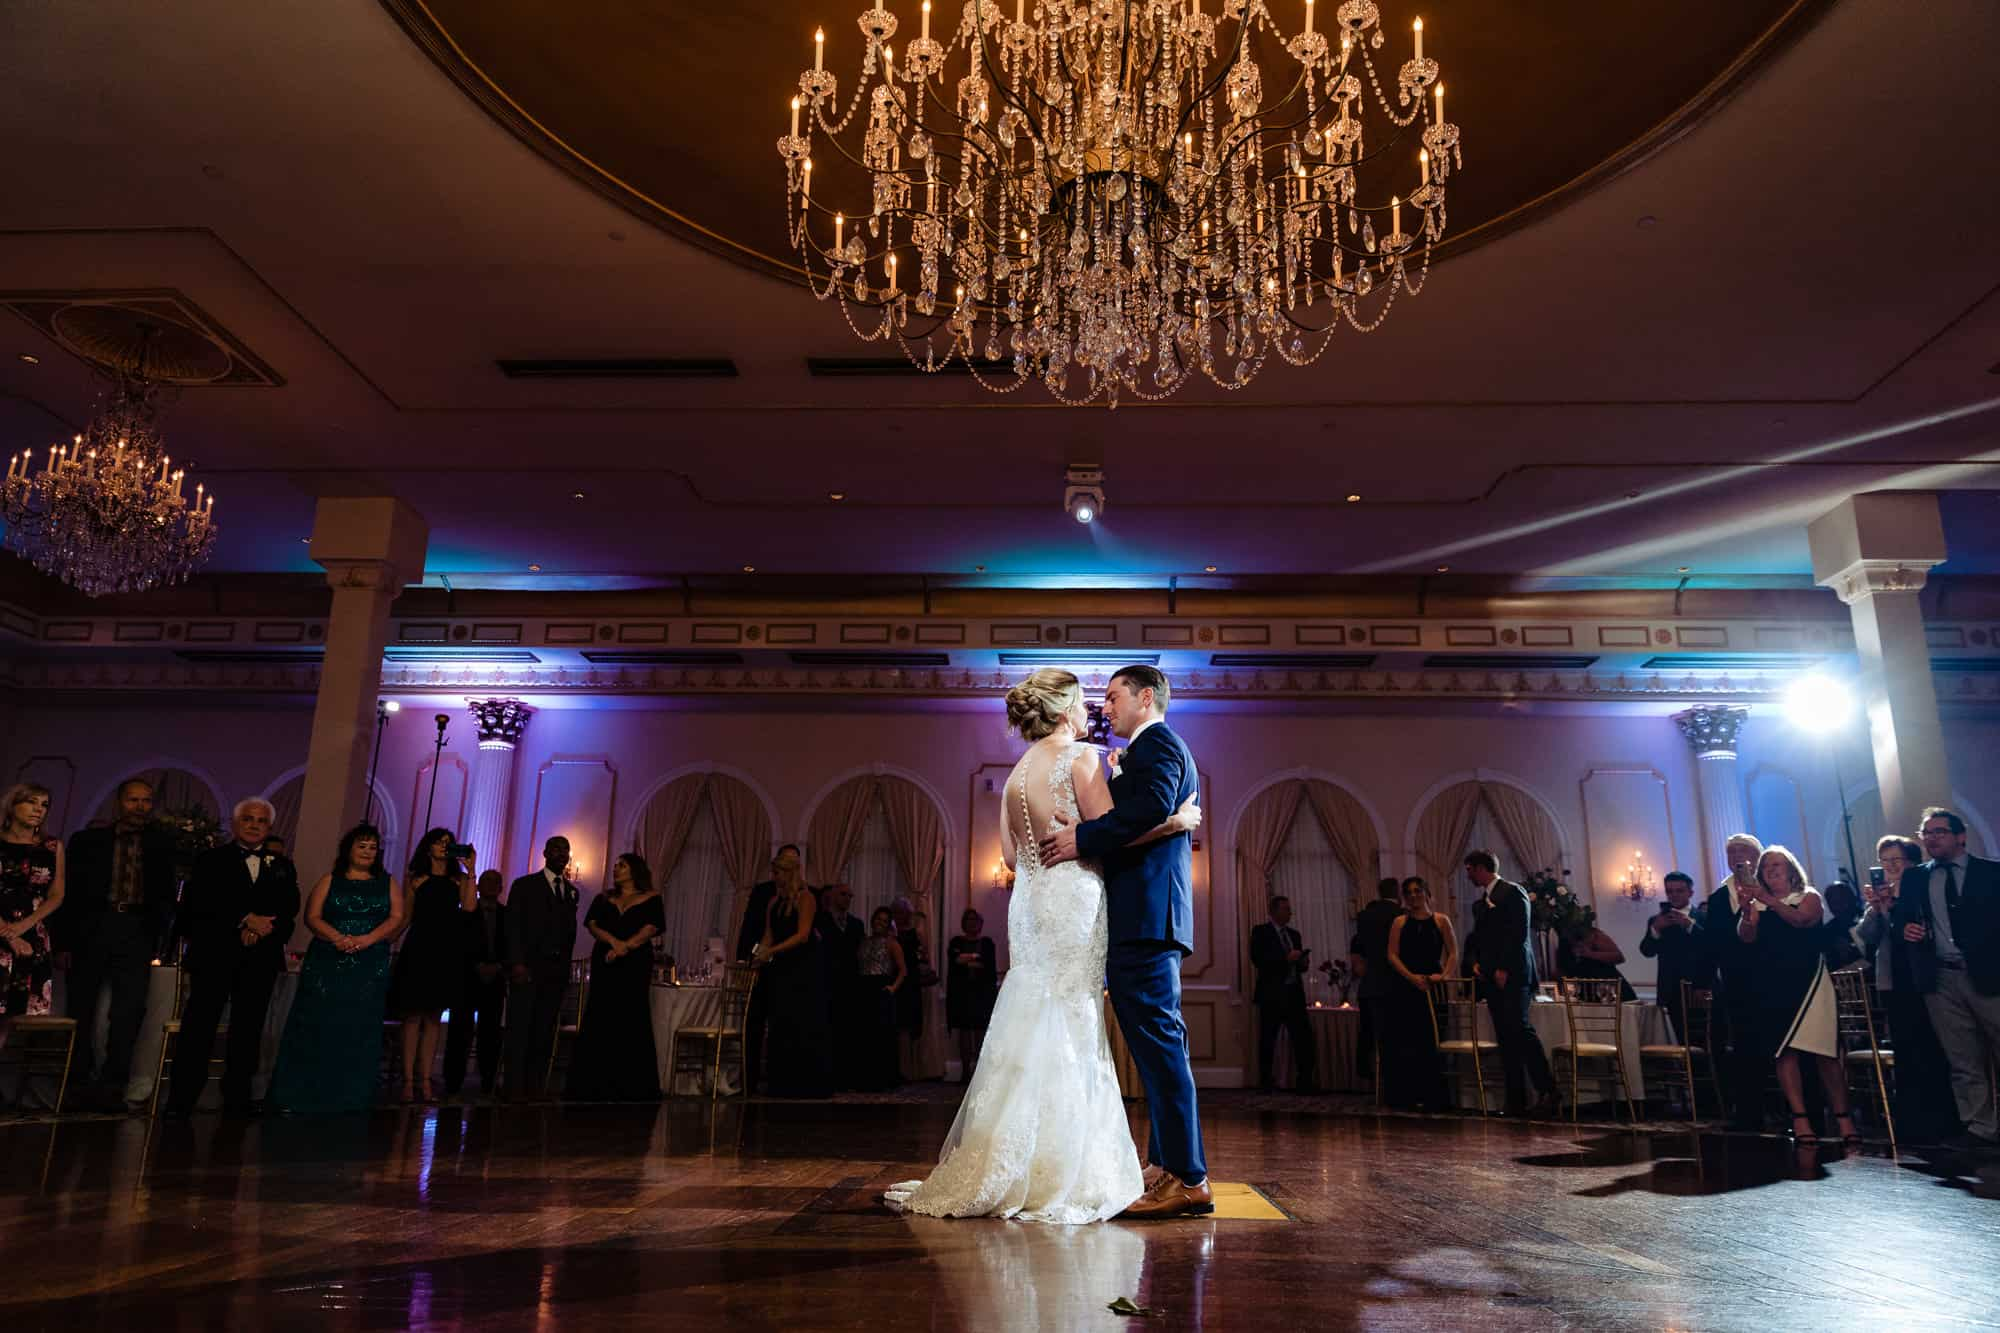 Dramtic image of bride and groom first dance